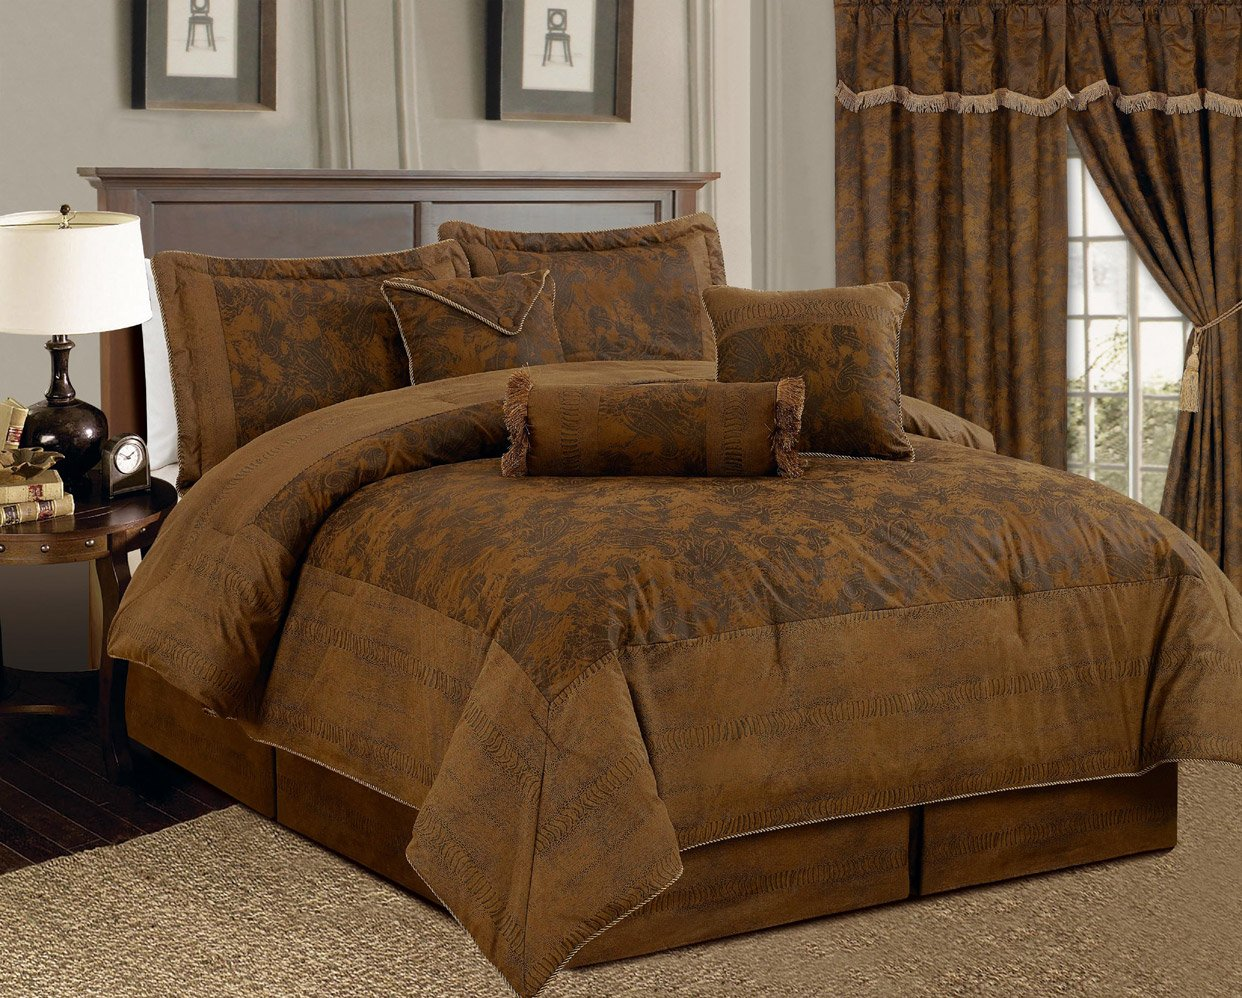 wid bed decorating com a california qlt savoypdx in bag hei sets prod sale on sears captivating bedding sheet king spin